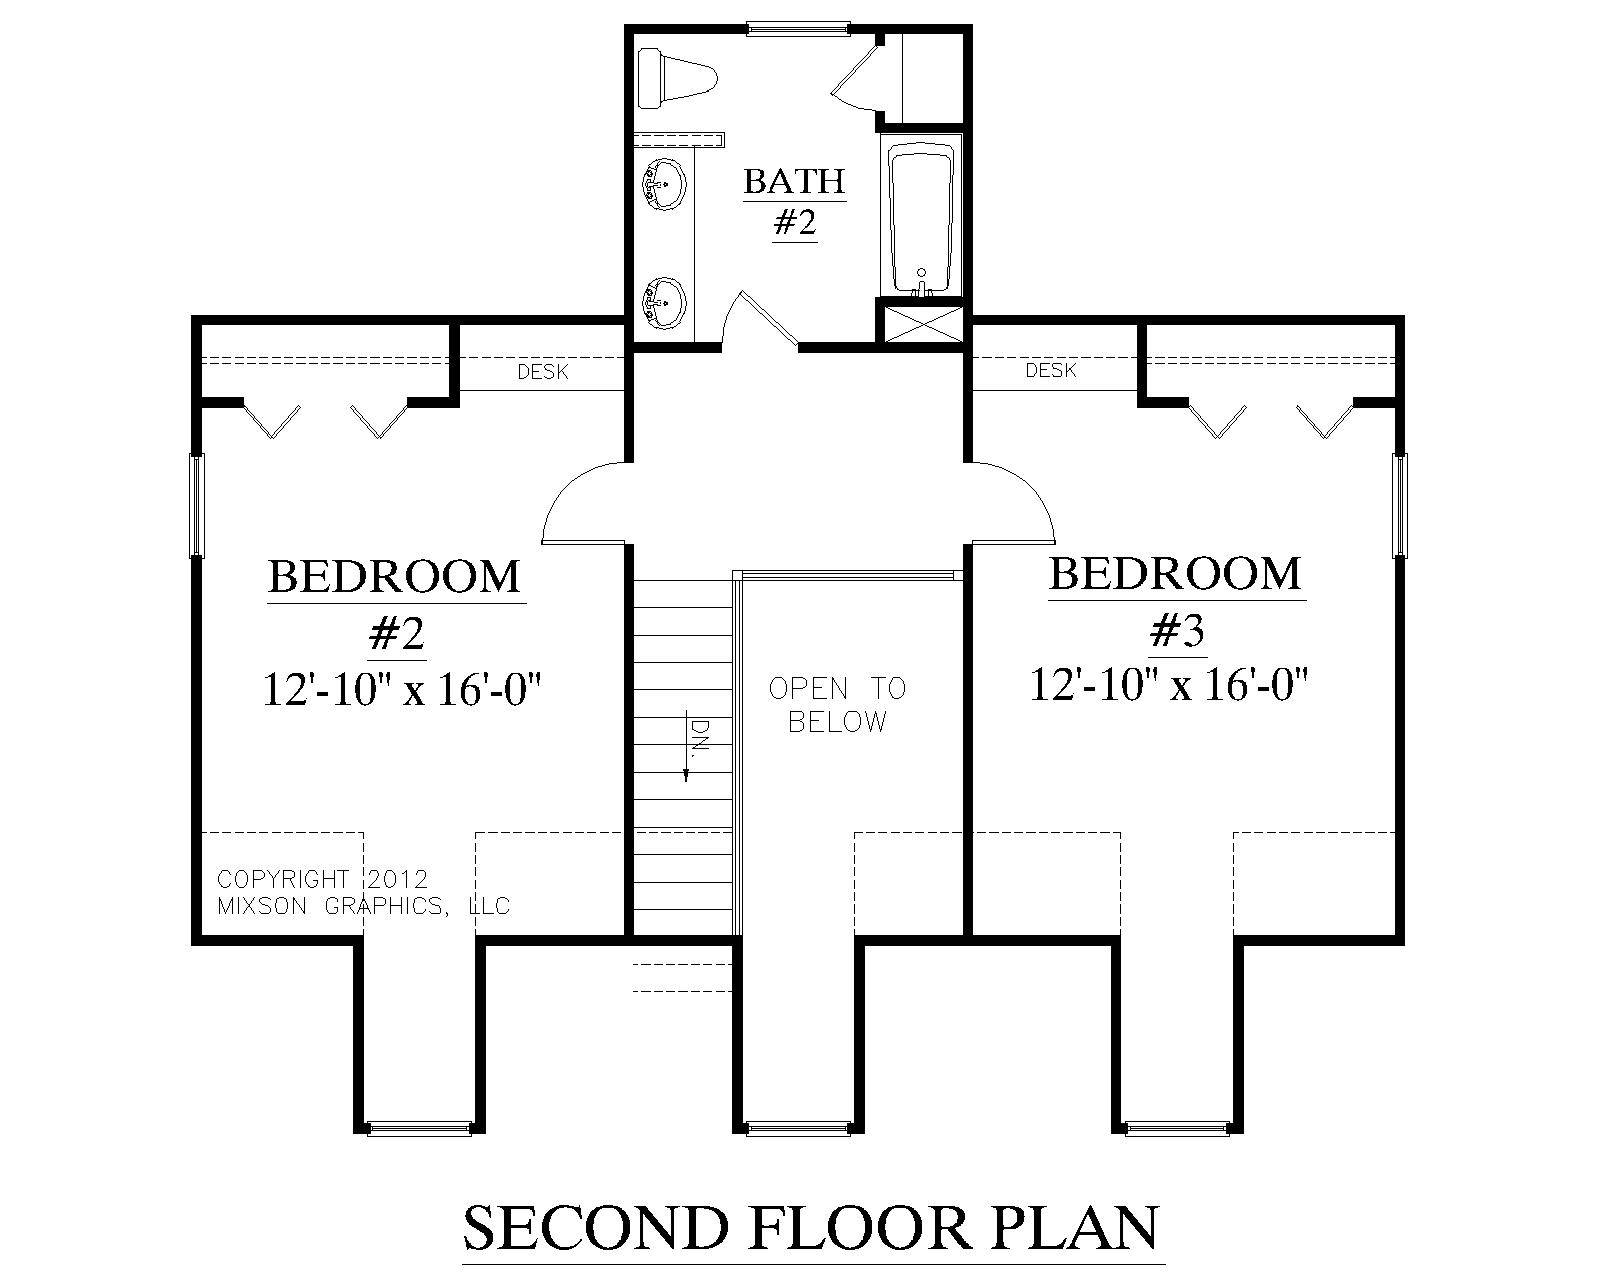 small house plans 2 story - Small Homes Plans 2